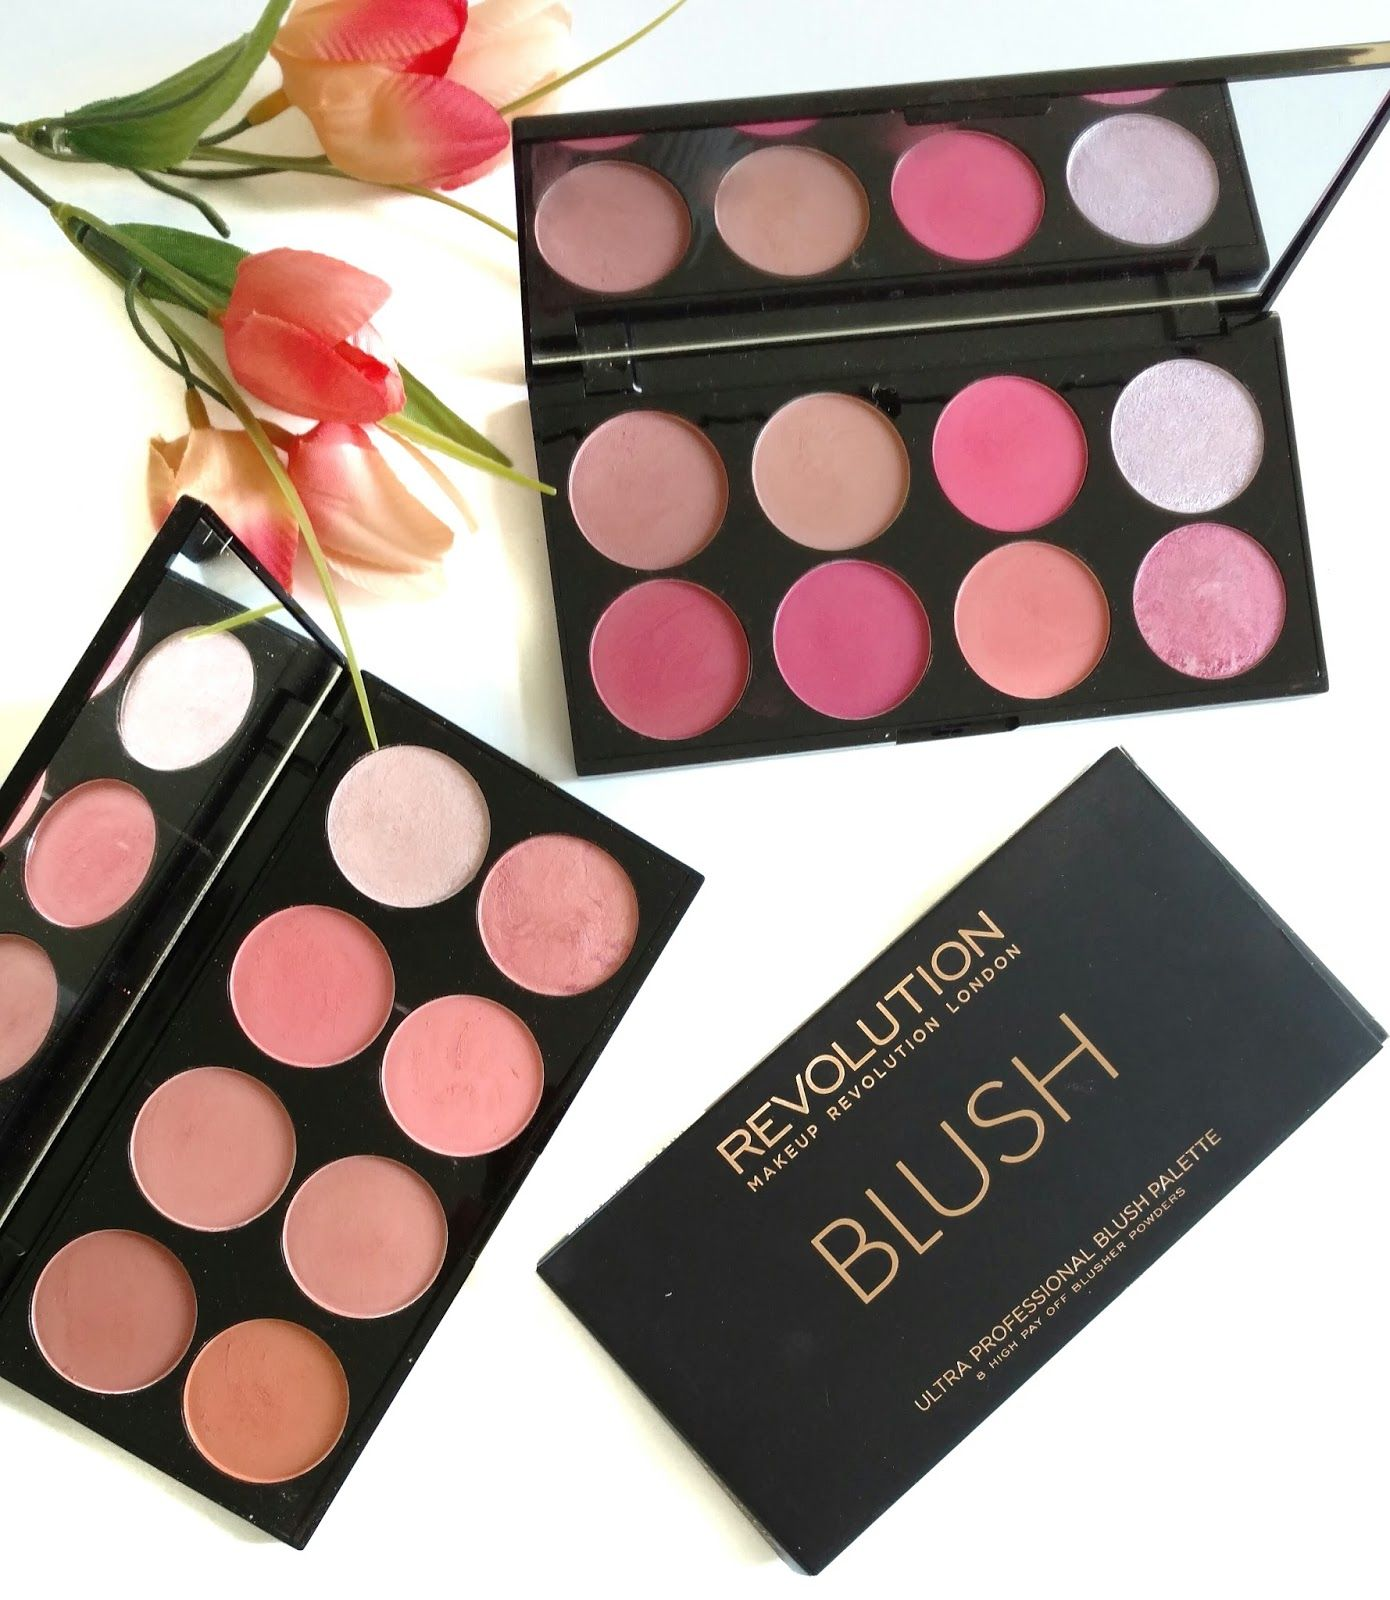 Makeup Revolution Ultra Blush Palettes in Hot Spice